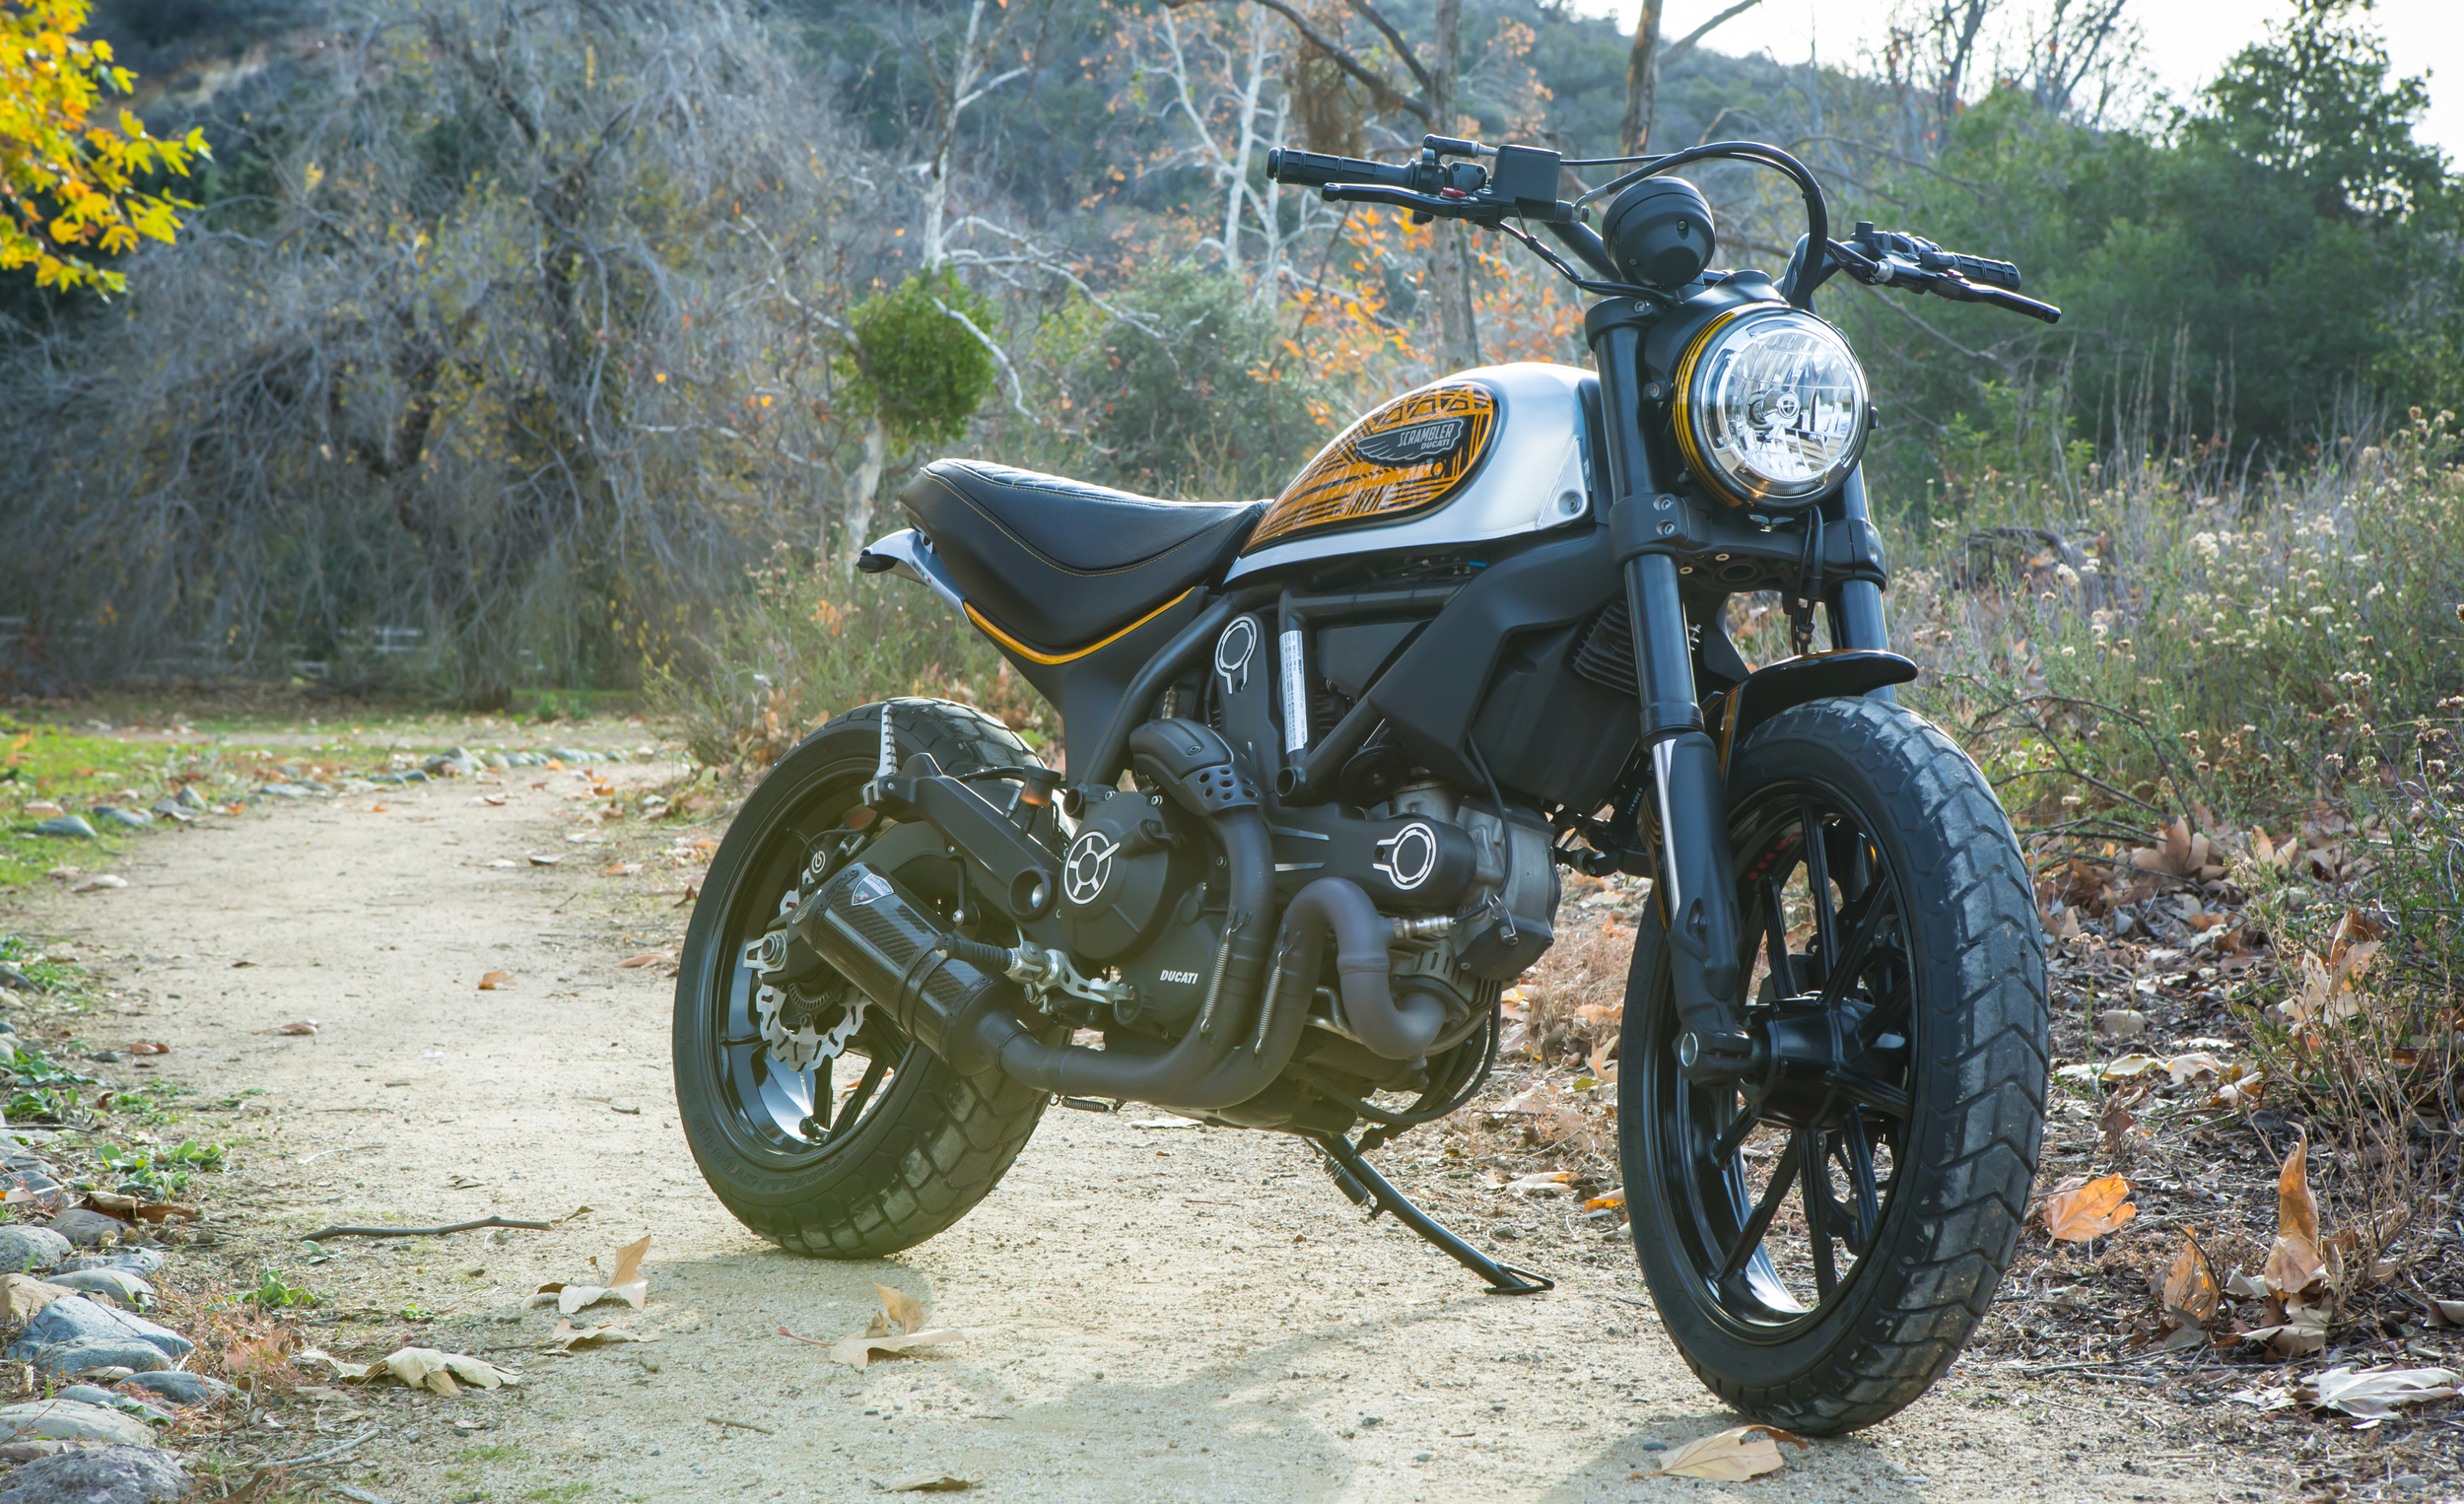 Anaheim Rod and Custom Ducati Scrambler Custom Paint.jpg